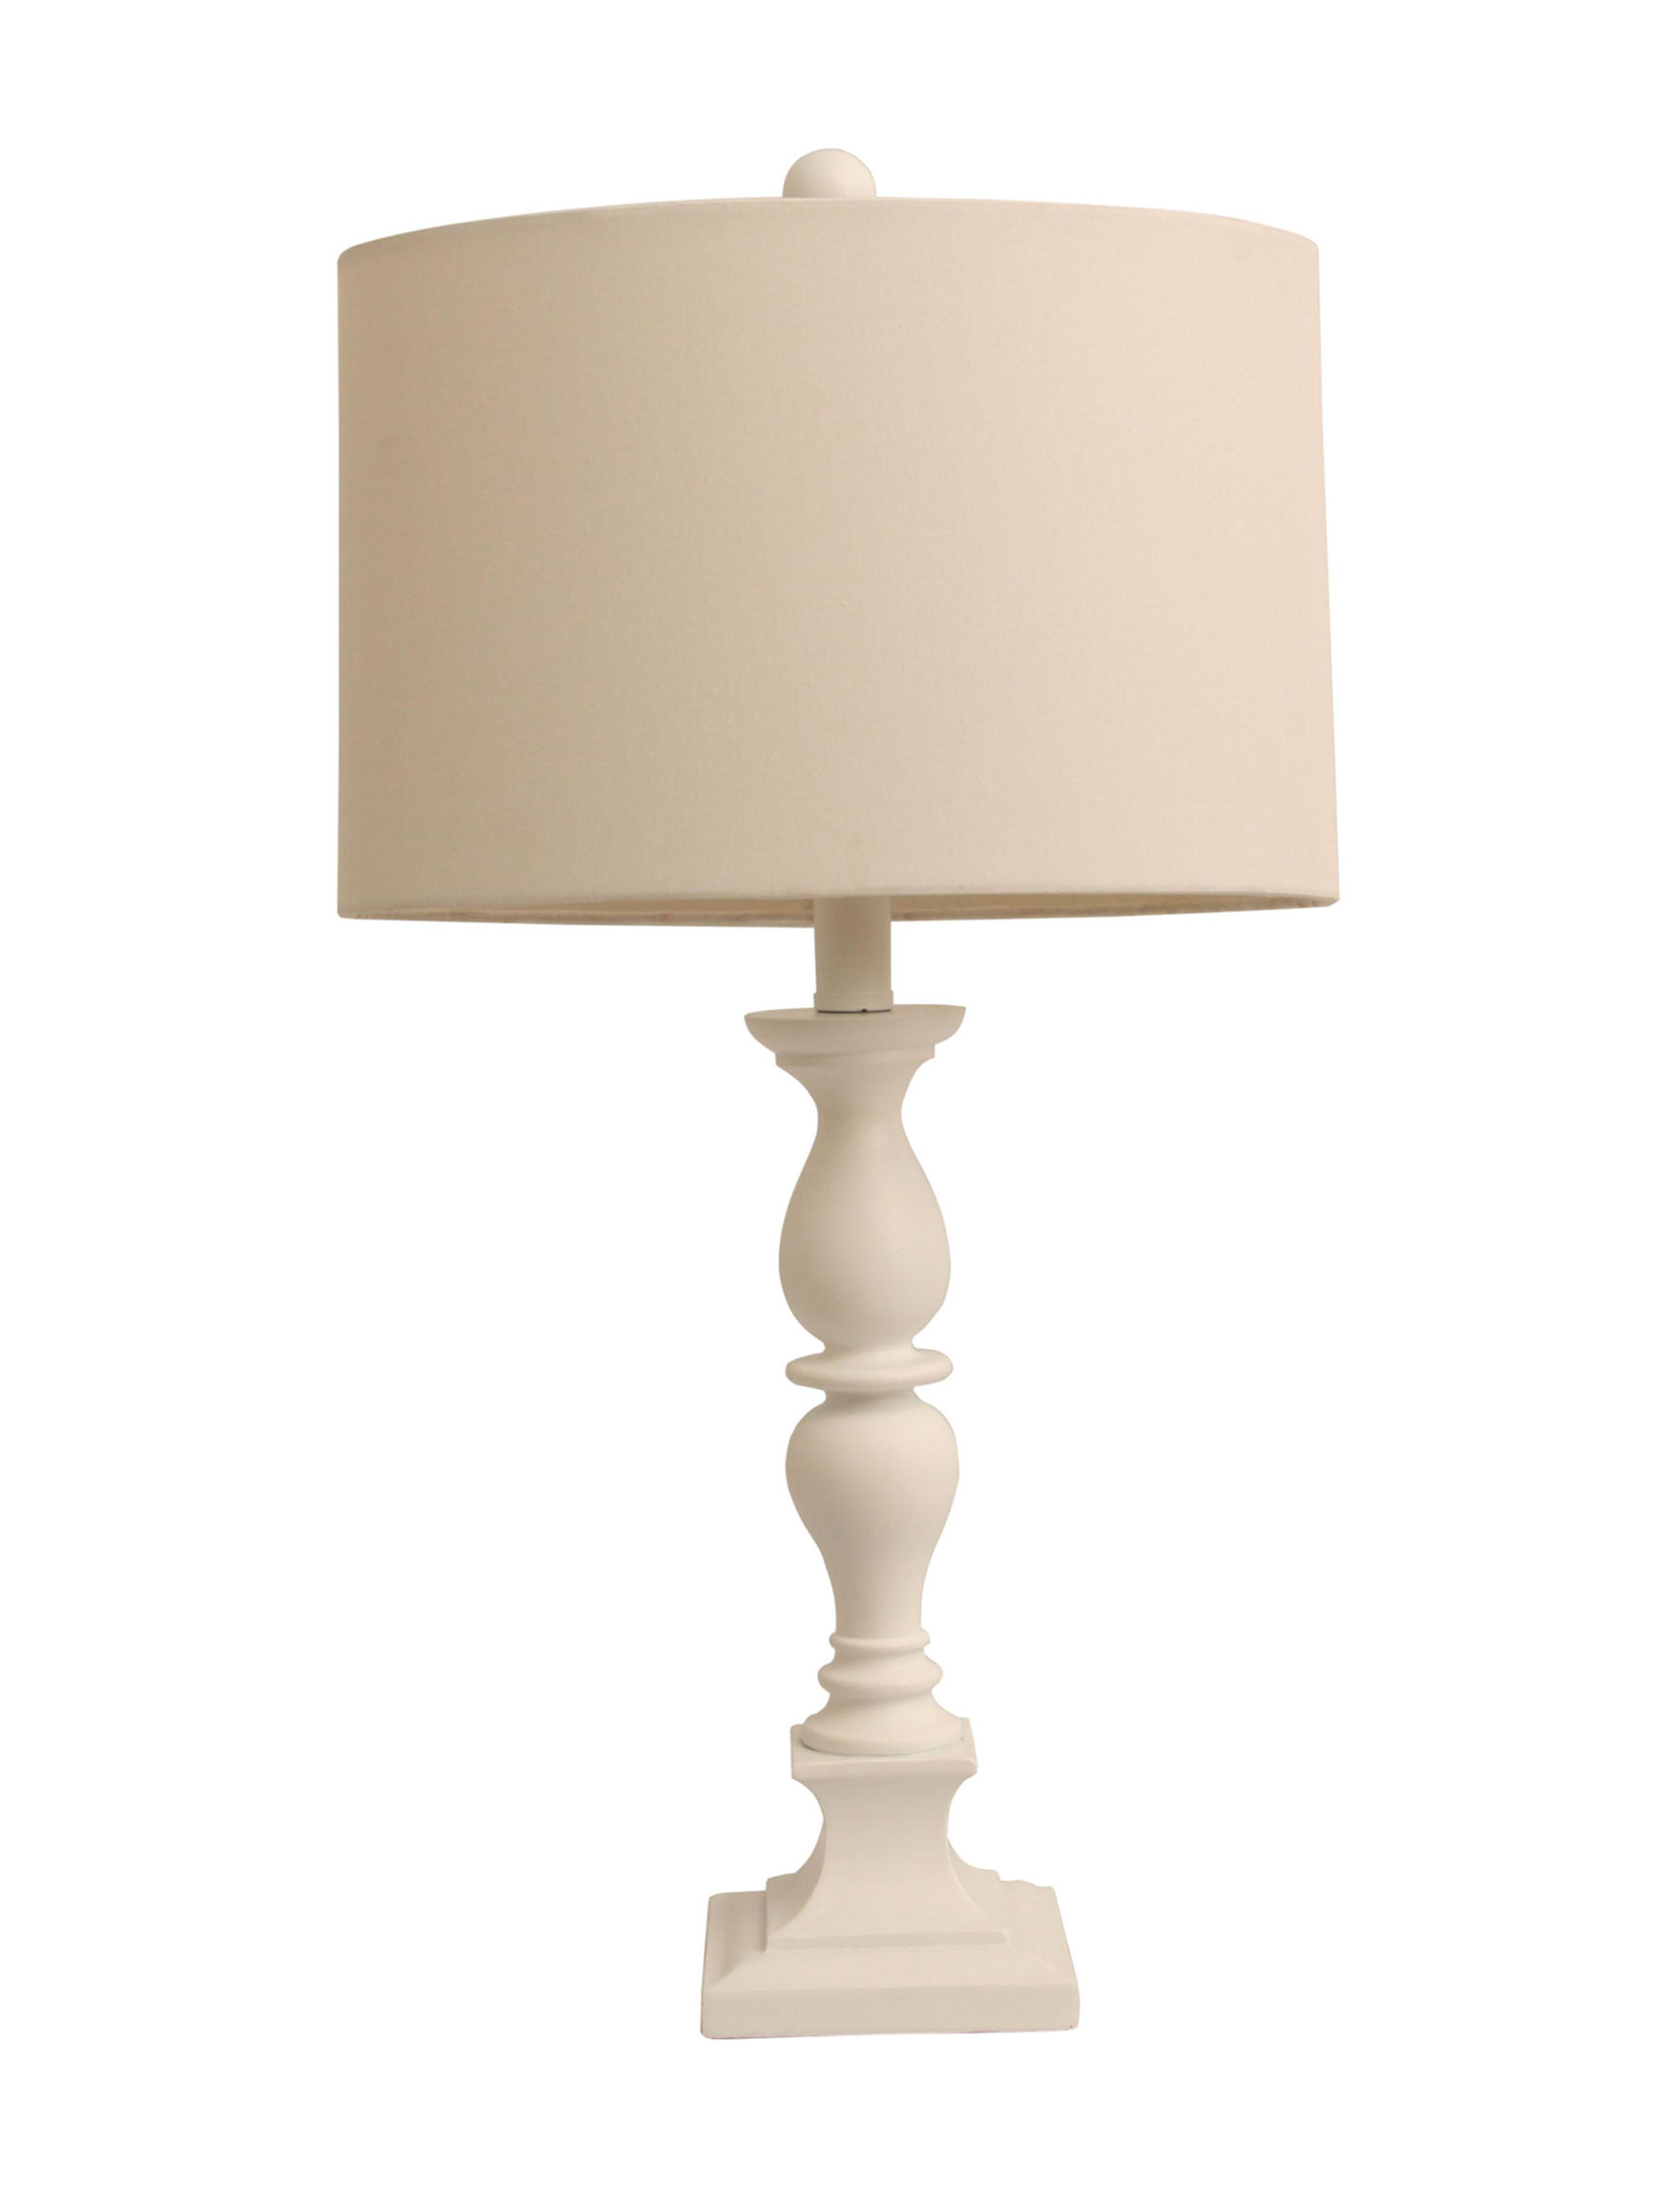 Decor Therapy Satin Table Lamps Lighting & Lamps